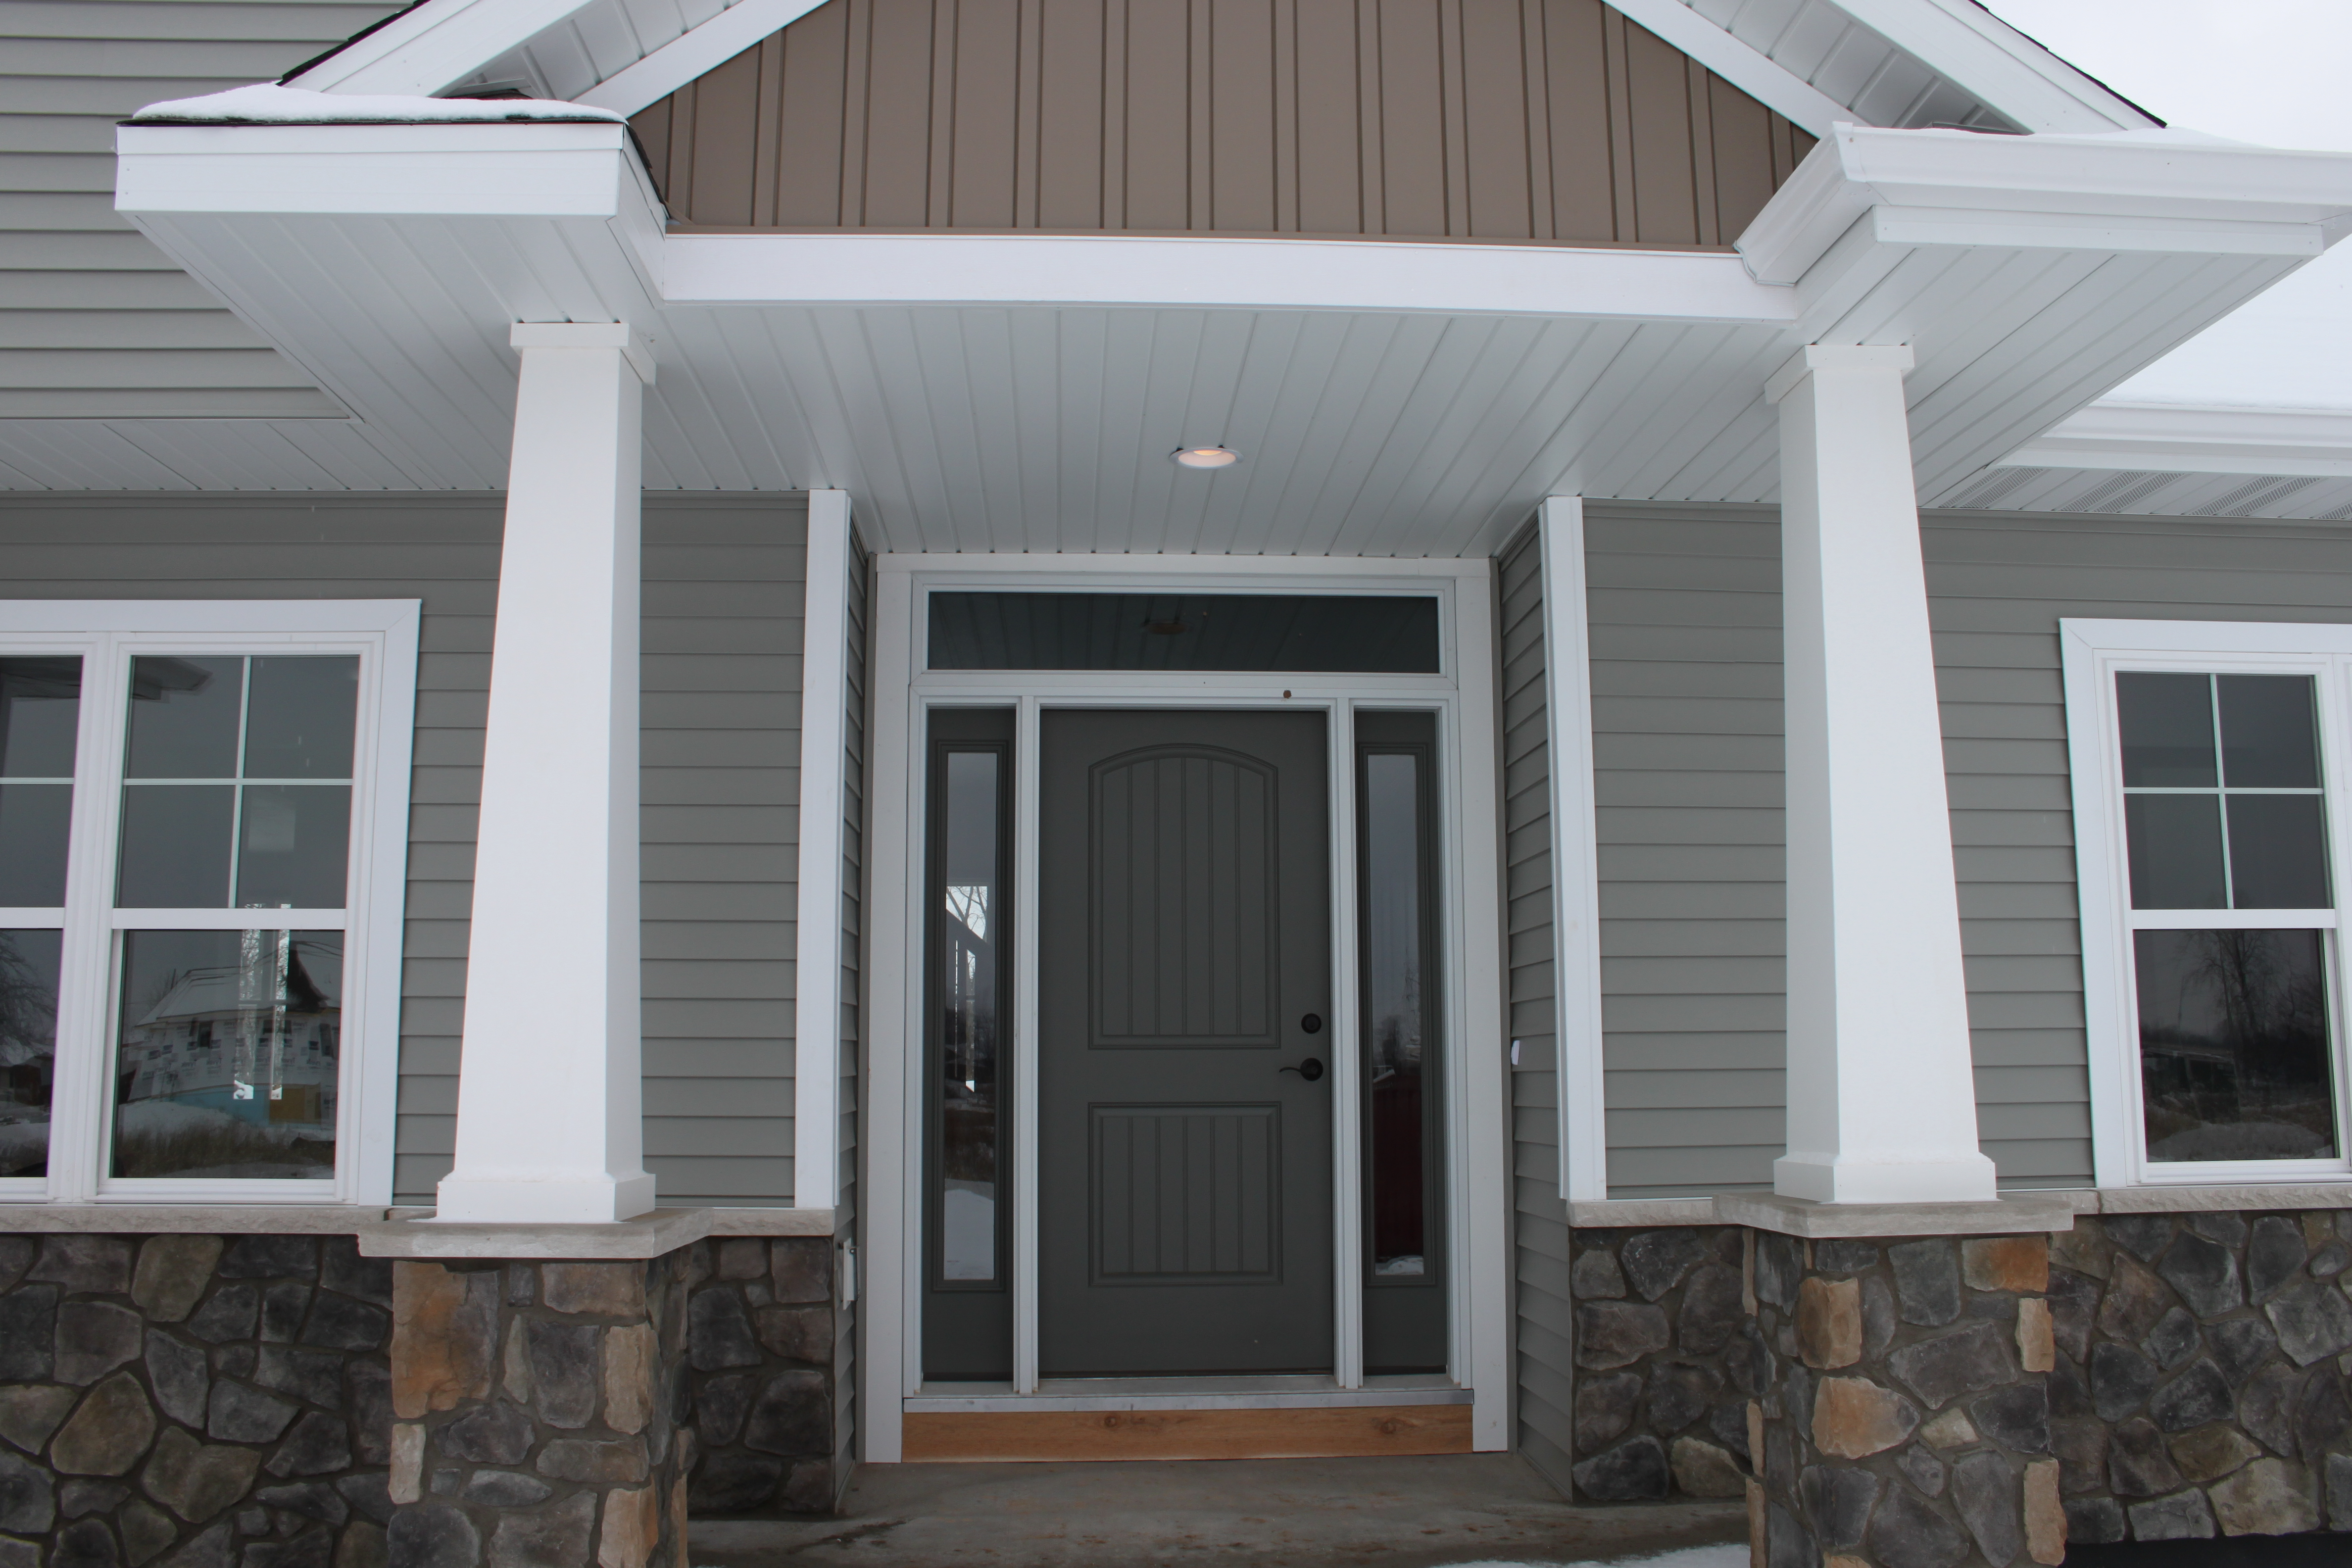 How to choose a color for your front door katie jane - What color door goes with gray house ...